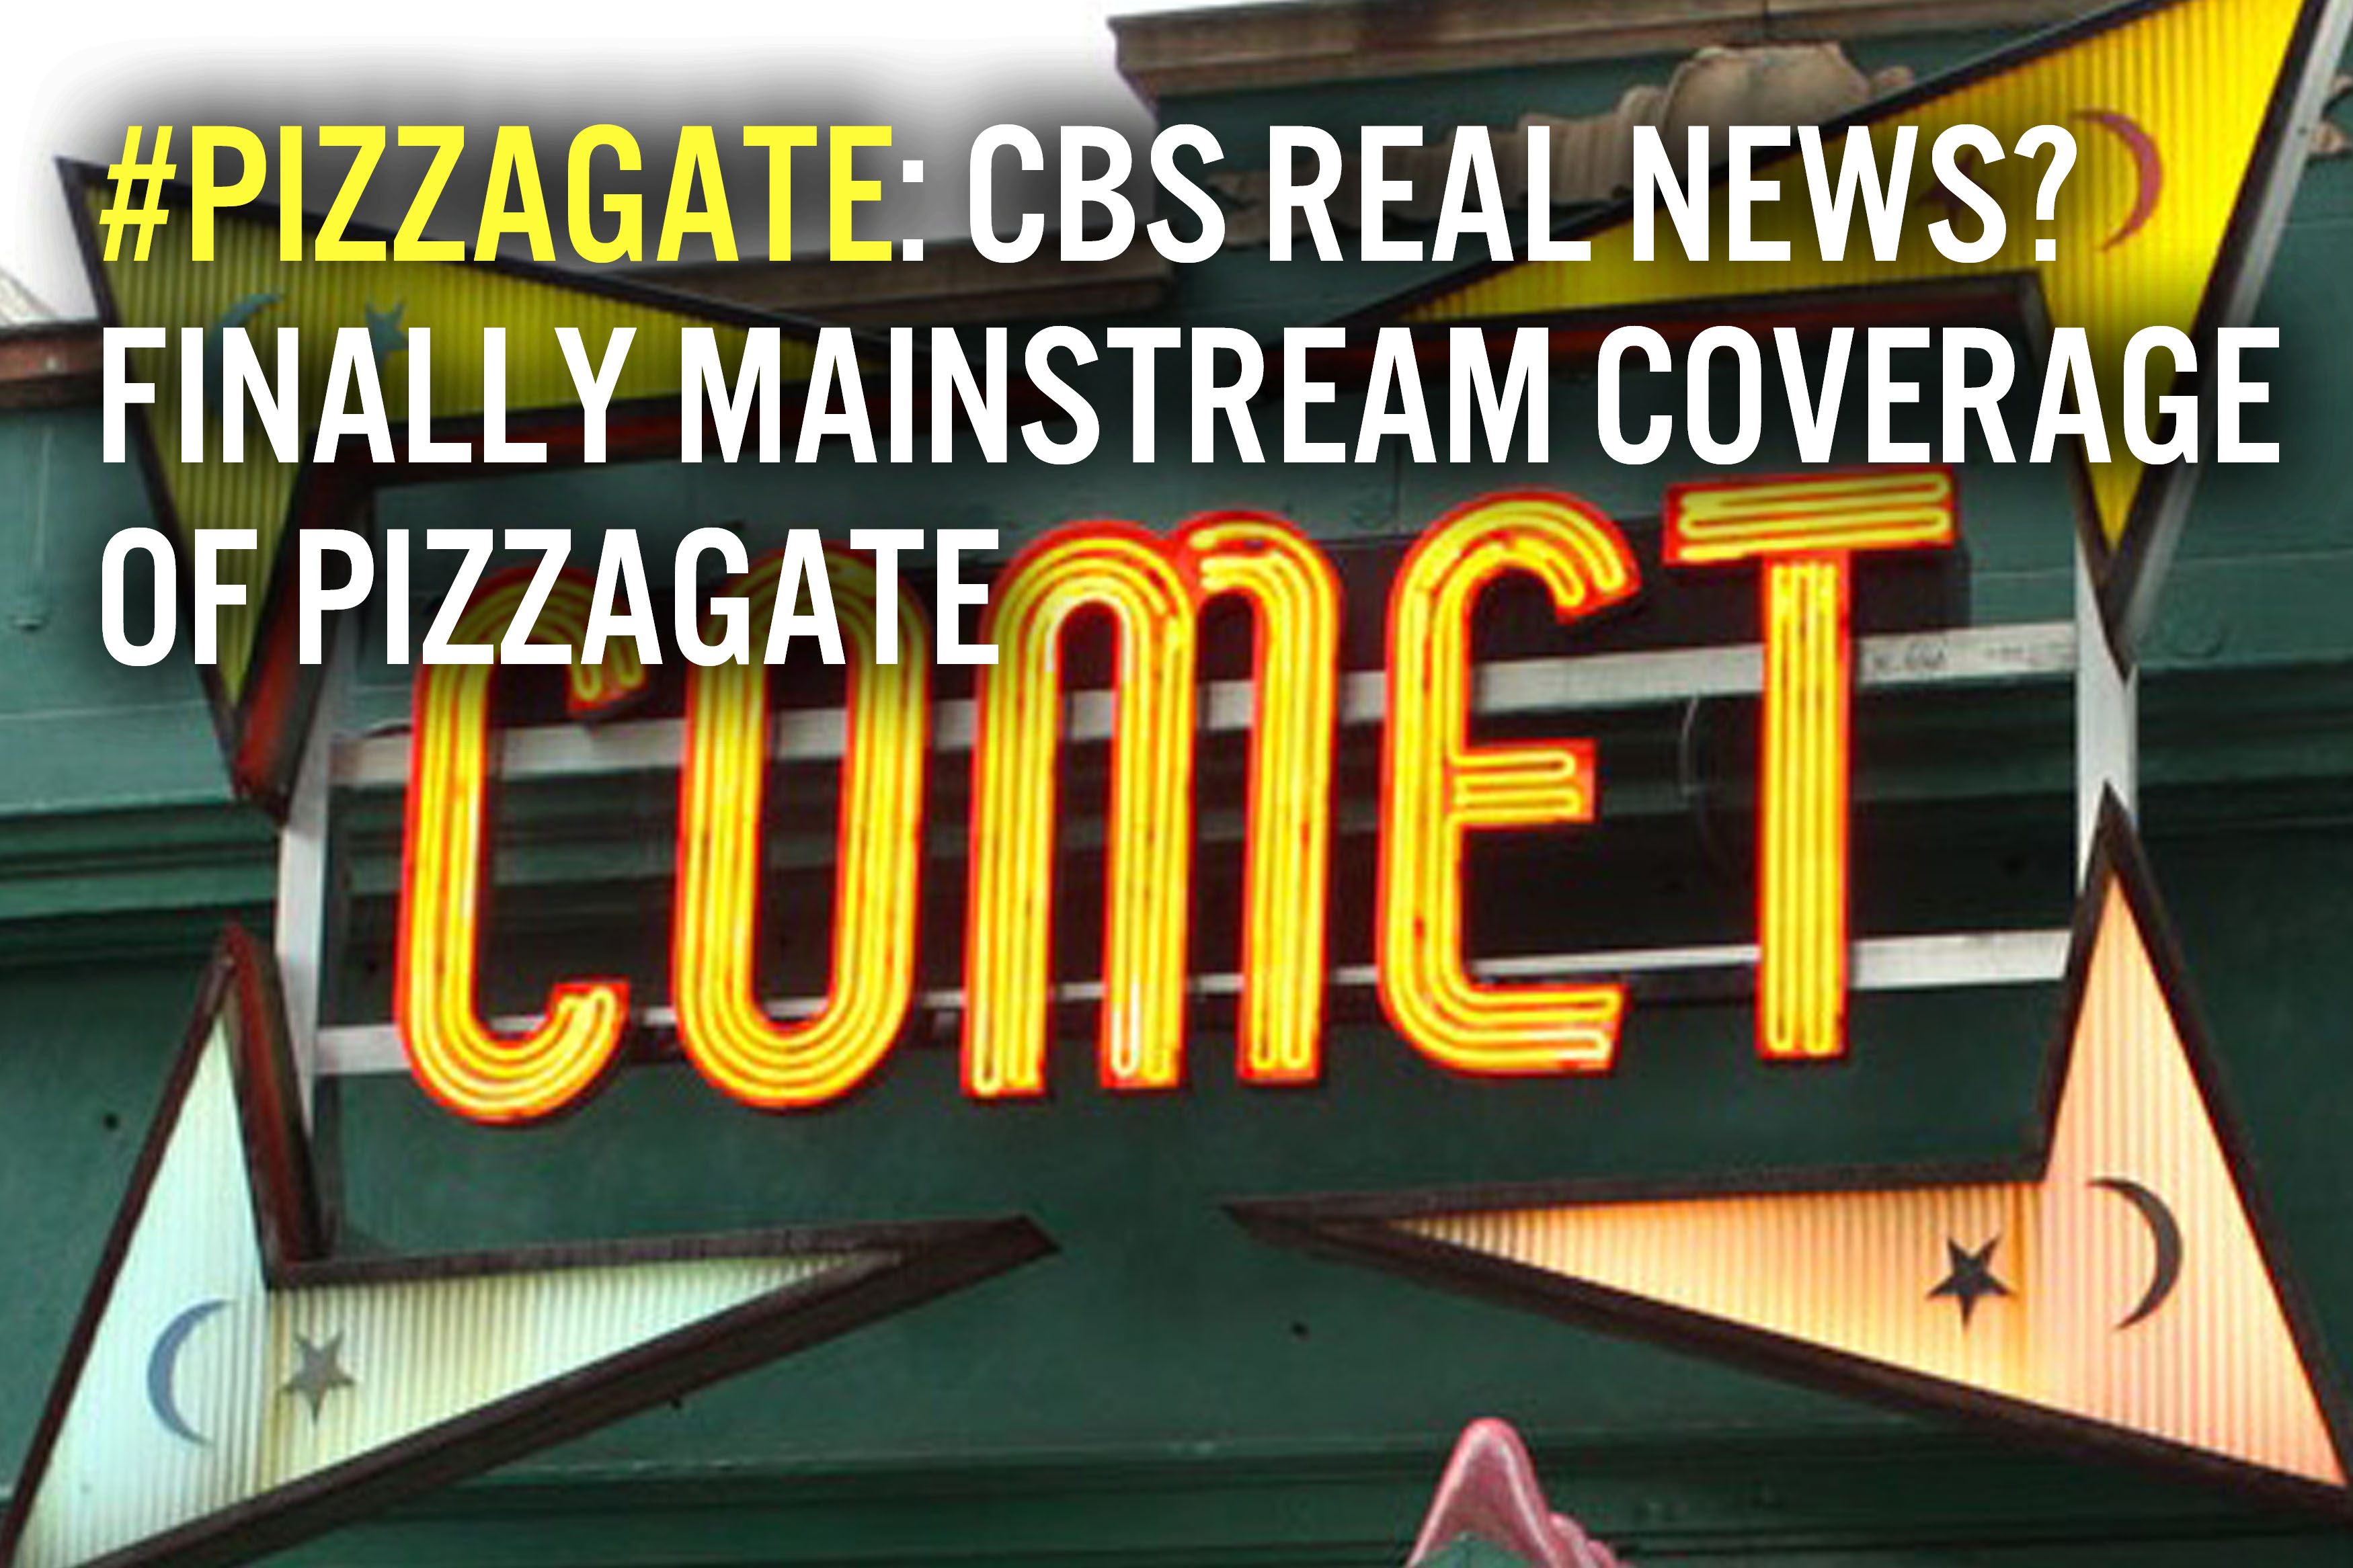 Pizzagate Mainstream